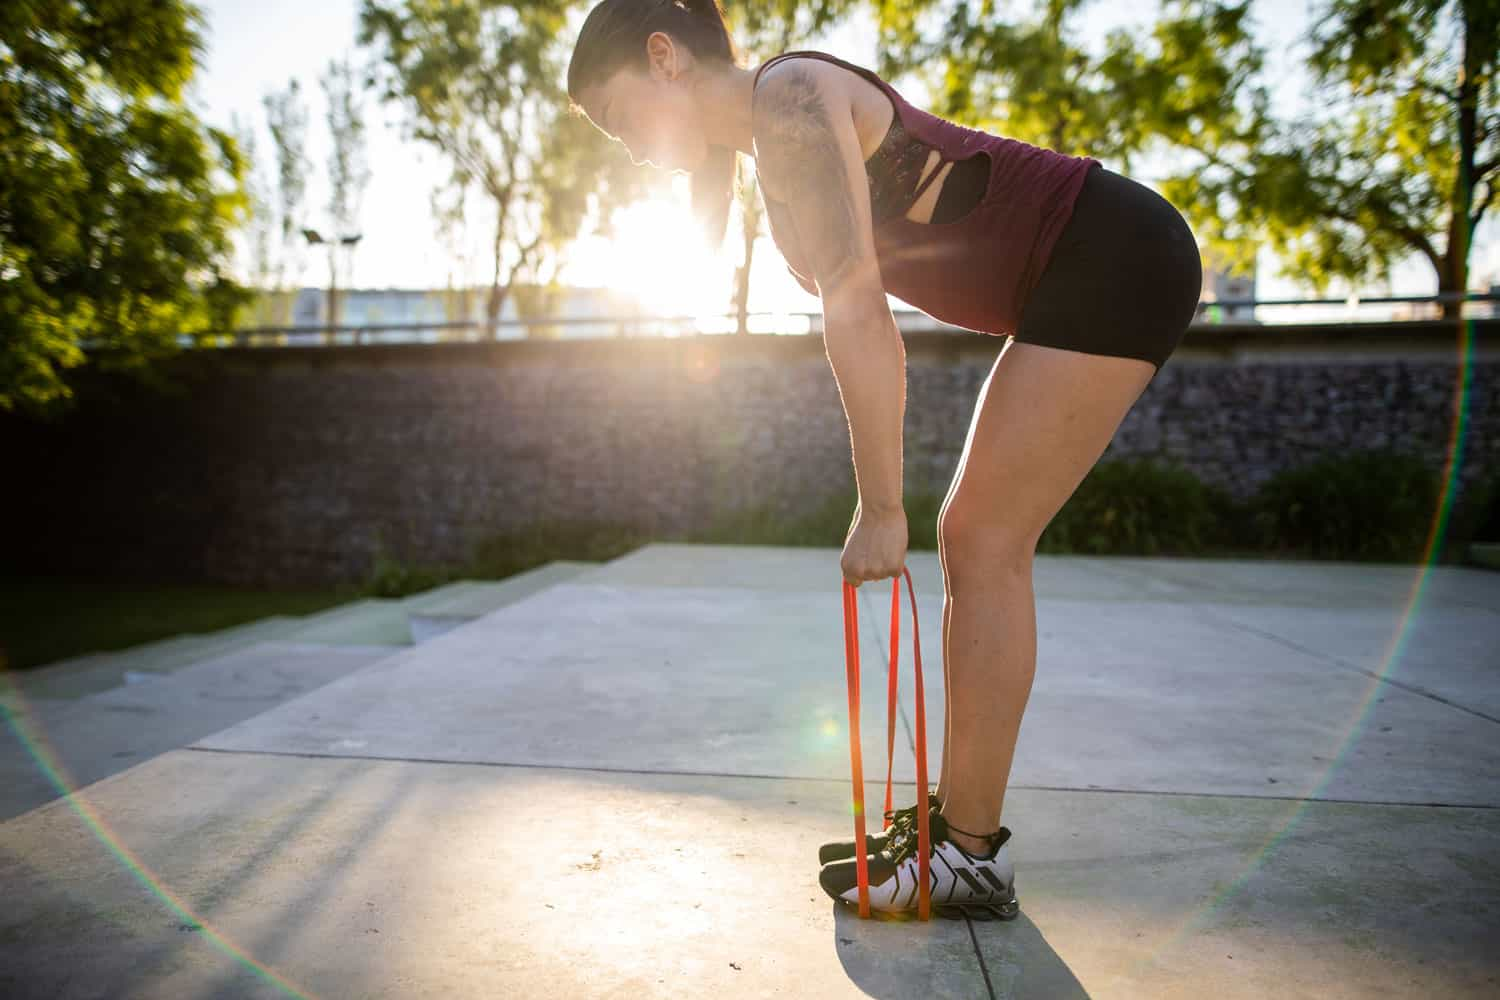 A woman working out using a resistance band outside